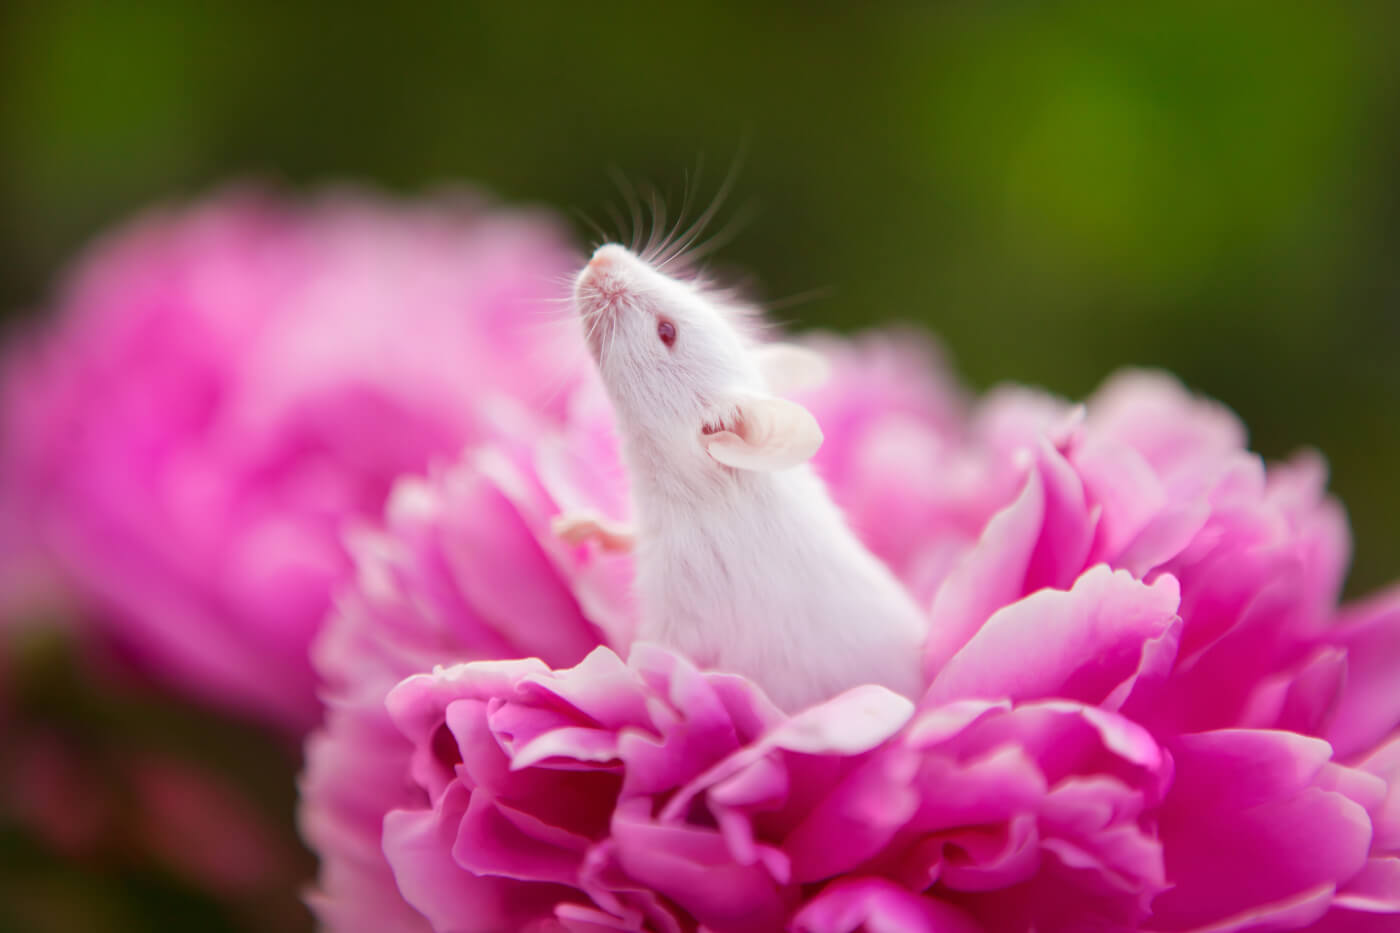 White rat emerges from pink peony